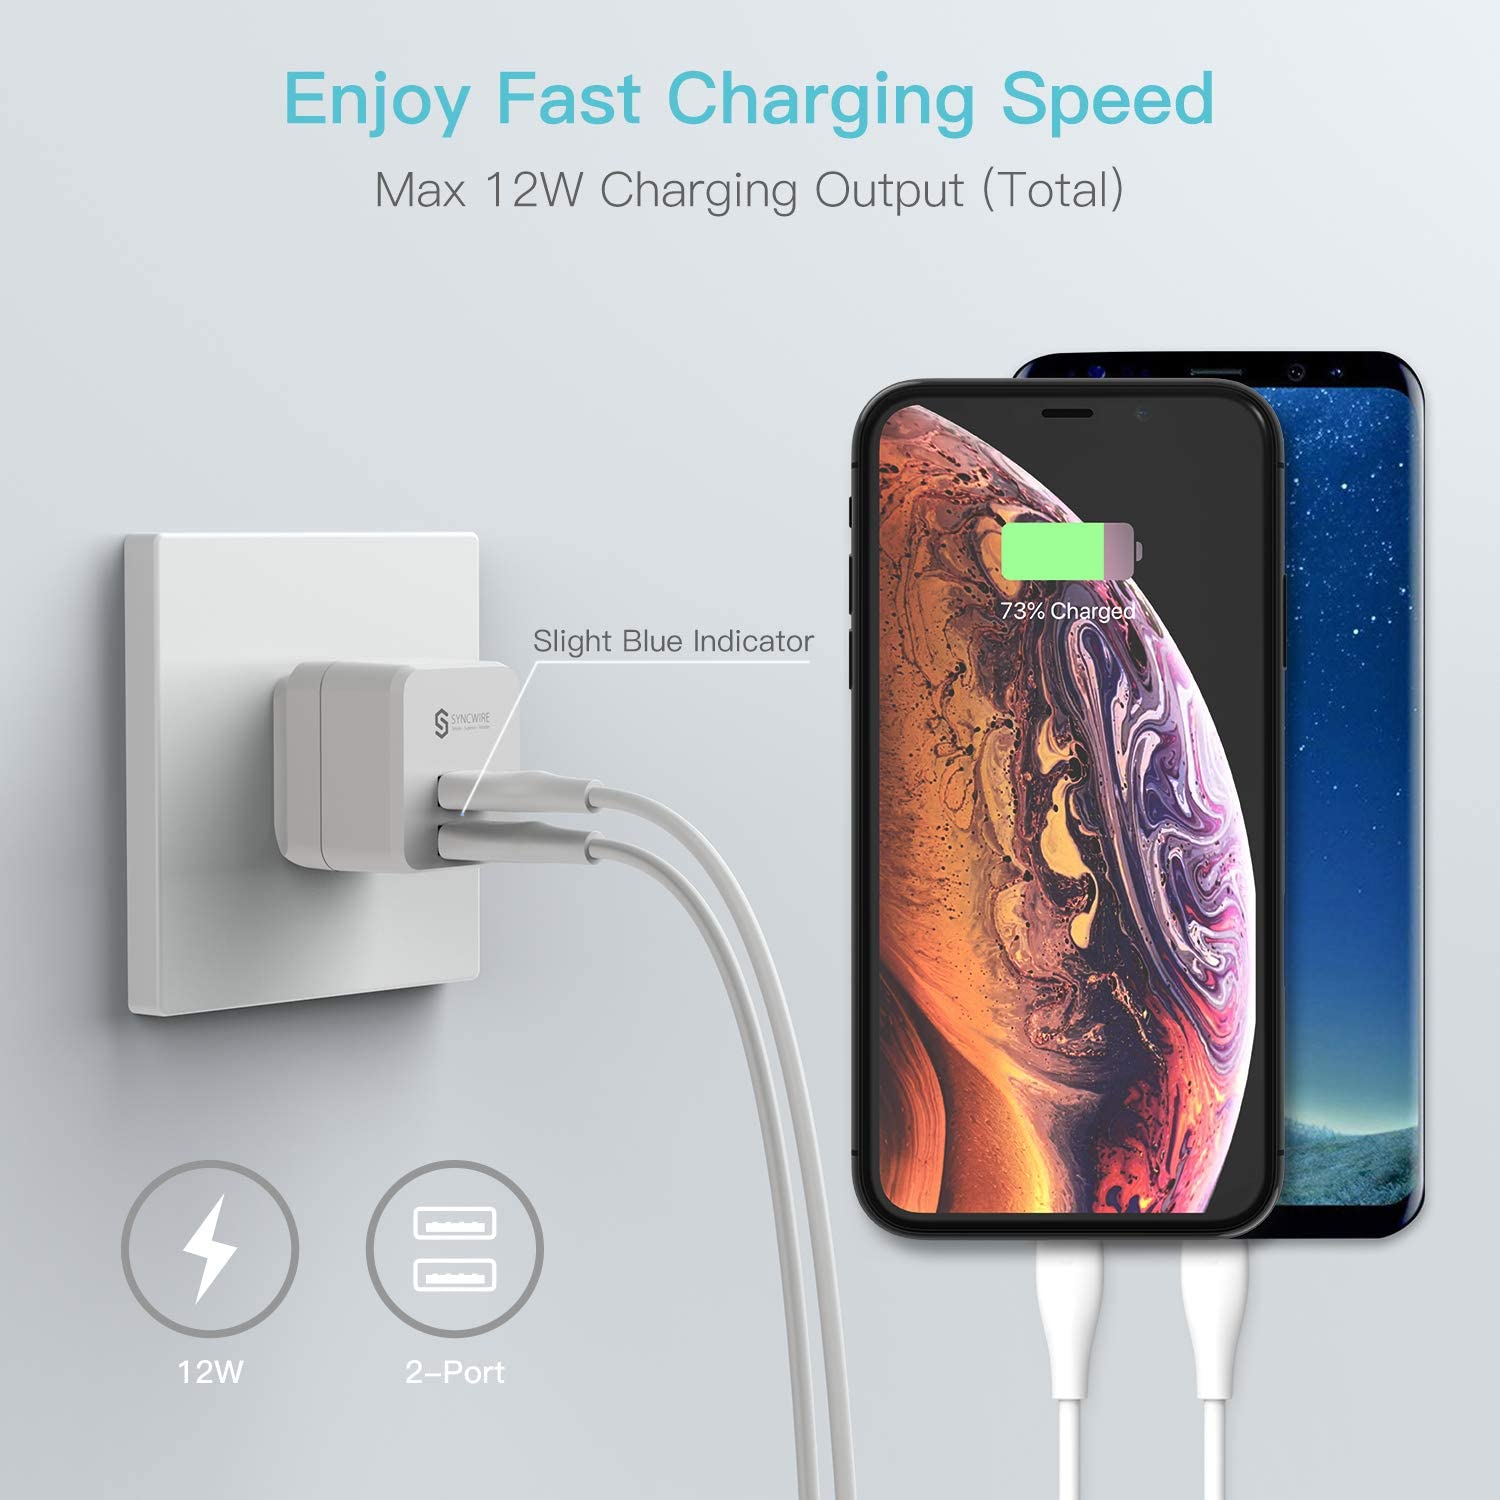 Syncwire Dual Port 12W USB Charging Cube with Foldable Plug for Apple iPhone XS//Max//XR//X//8//7//6S//6 Plus USB Wall Charger Block HTC Ipad Moto Samsung S10//S9//S8 2-Pack LG /& More